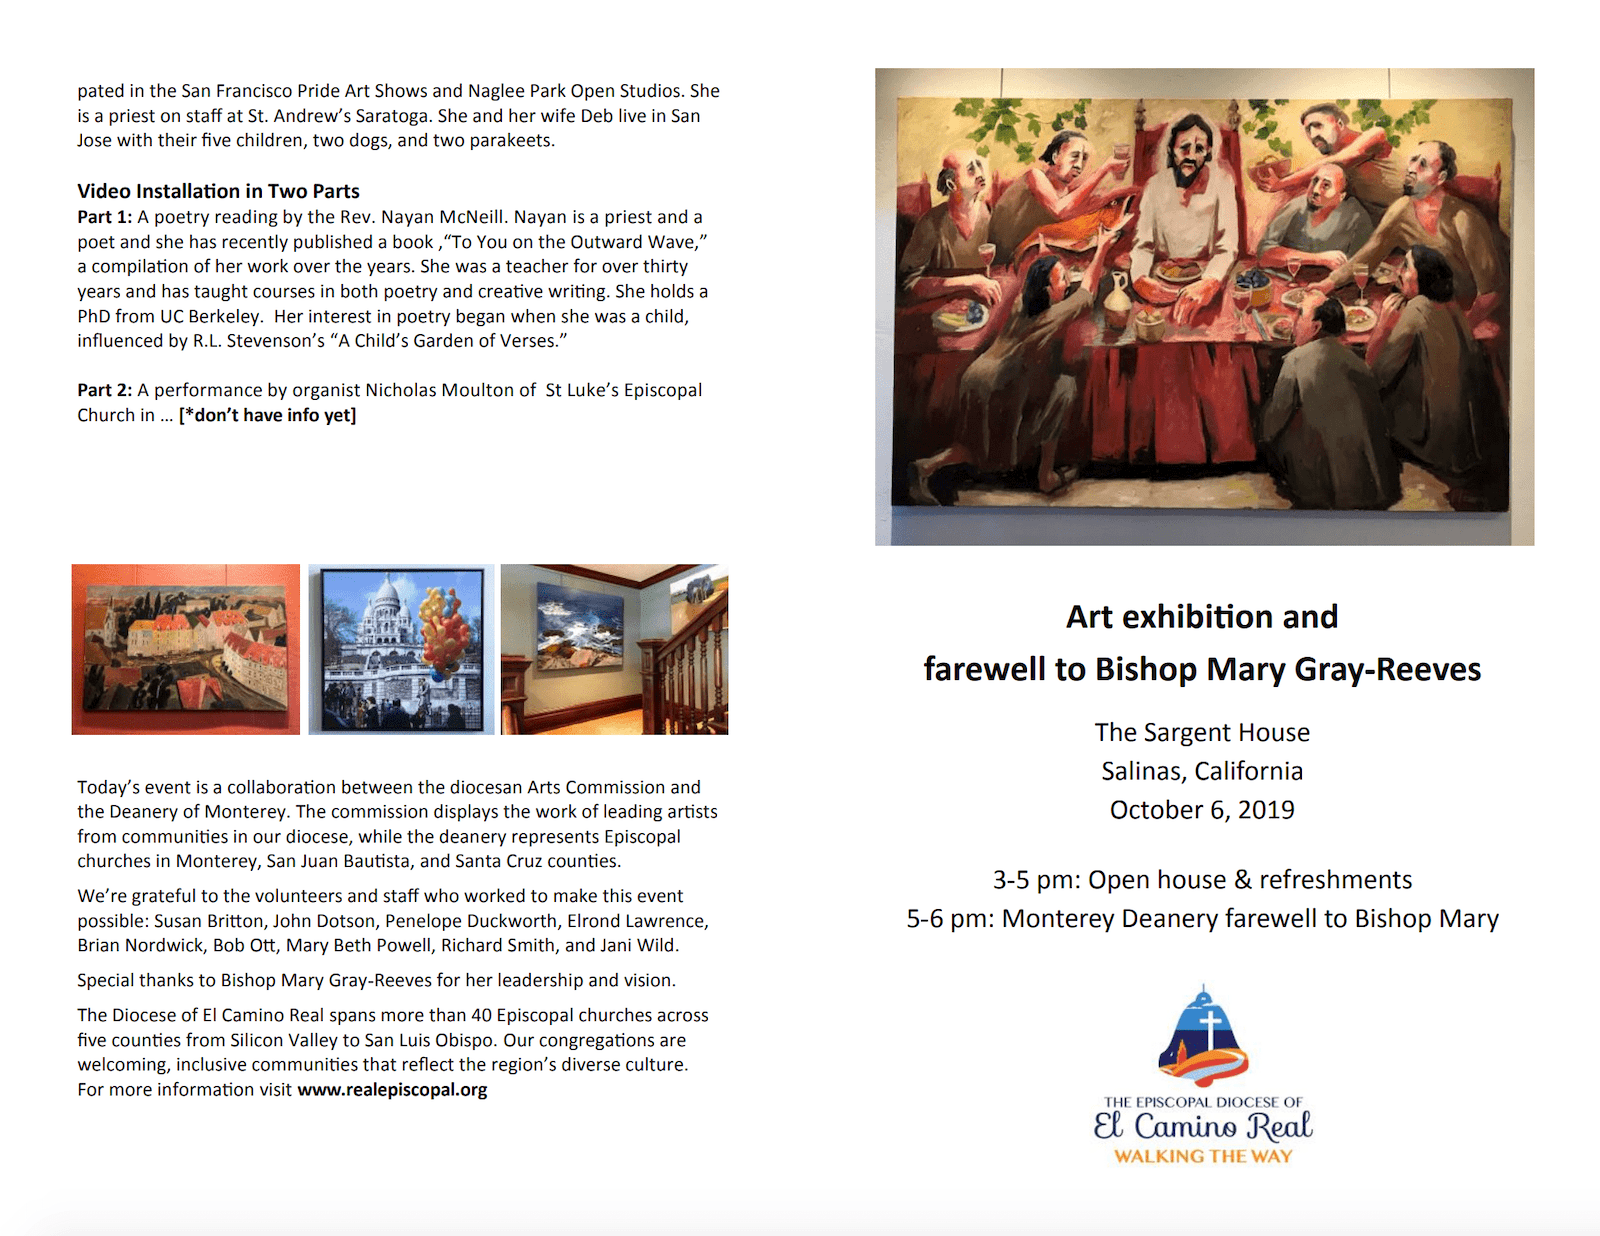 Join us for an Art Exhibition with a special farewell reception for Bishop Mary on Sunday, October 6, 2019 at the Sargent House in Downtown Salinas, CA